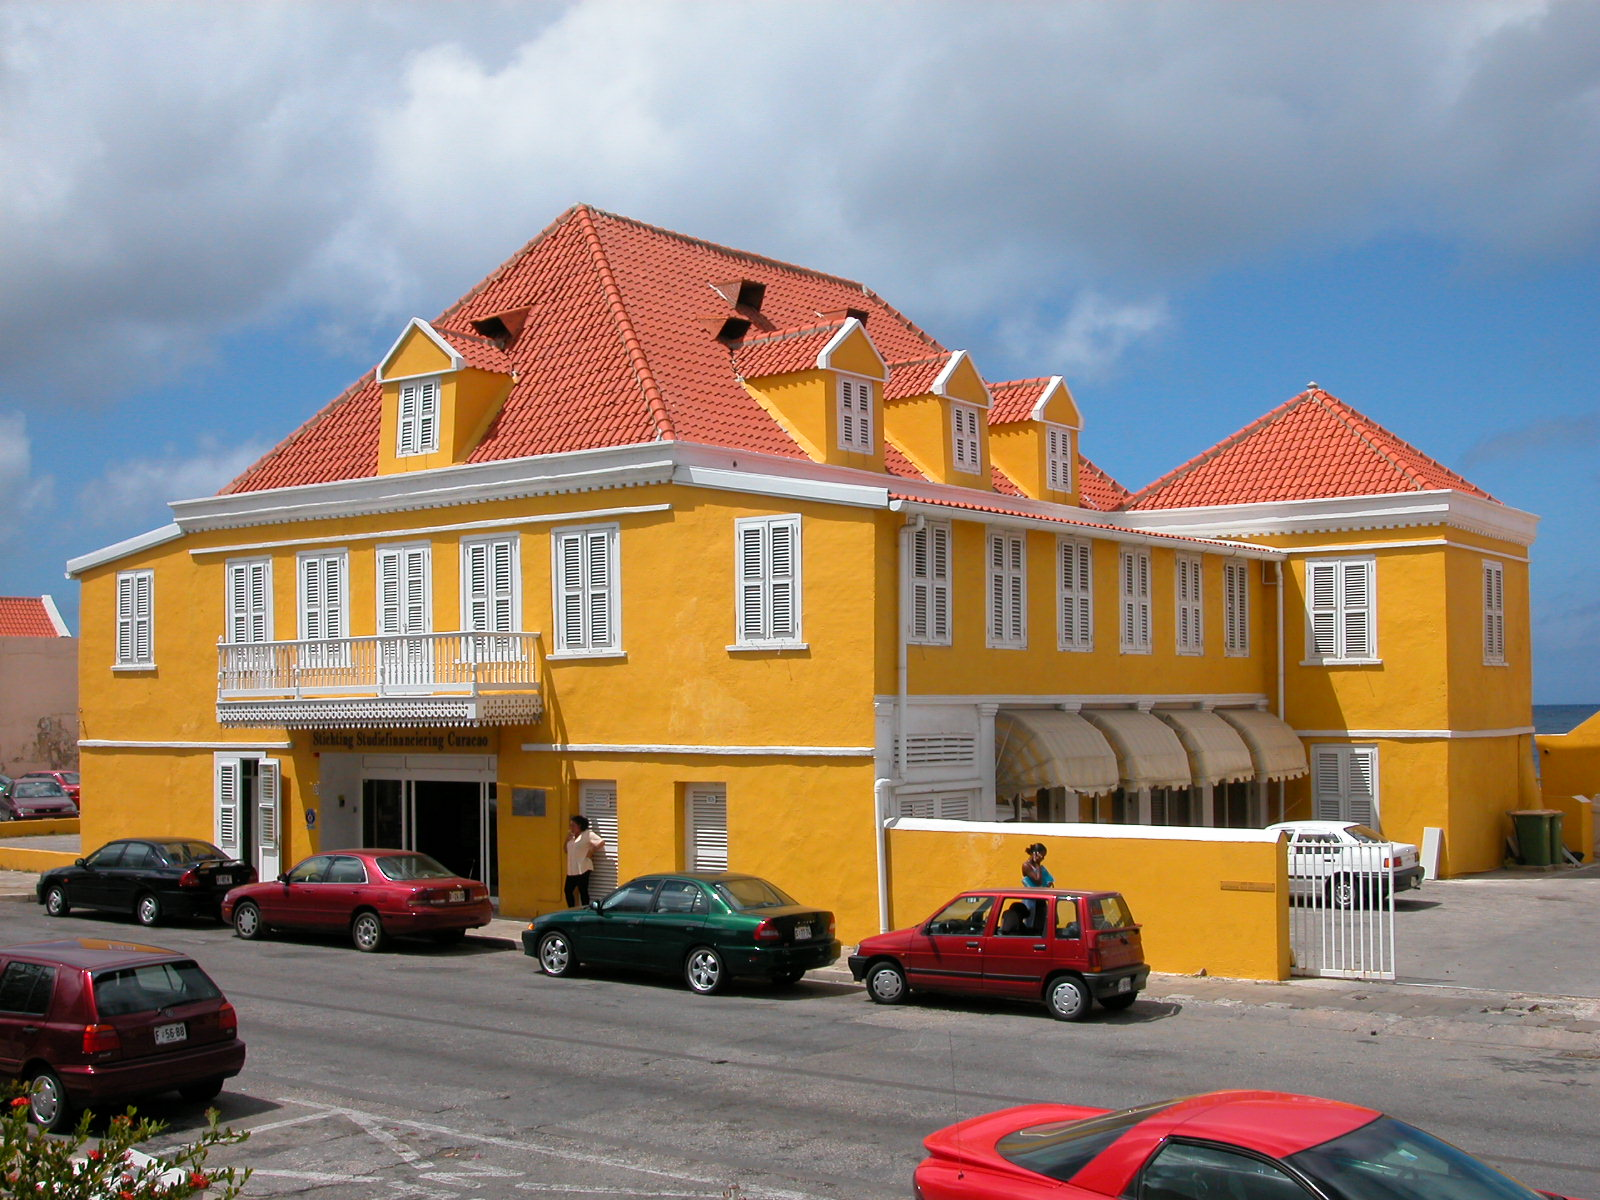 jacco curacao architecture exteriors building office stufi woman calling phone yellow cars parked